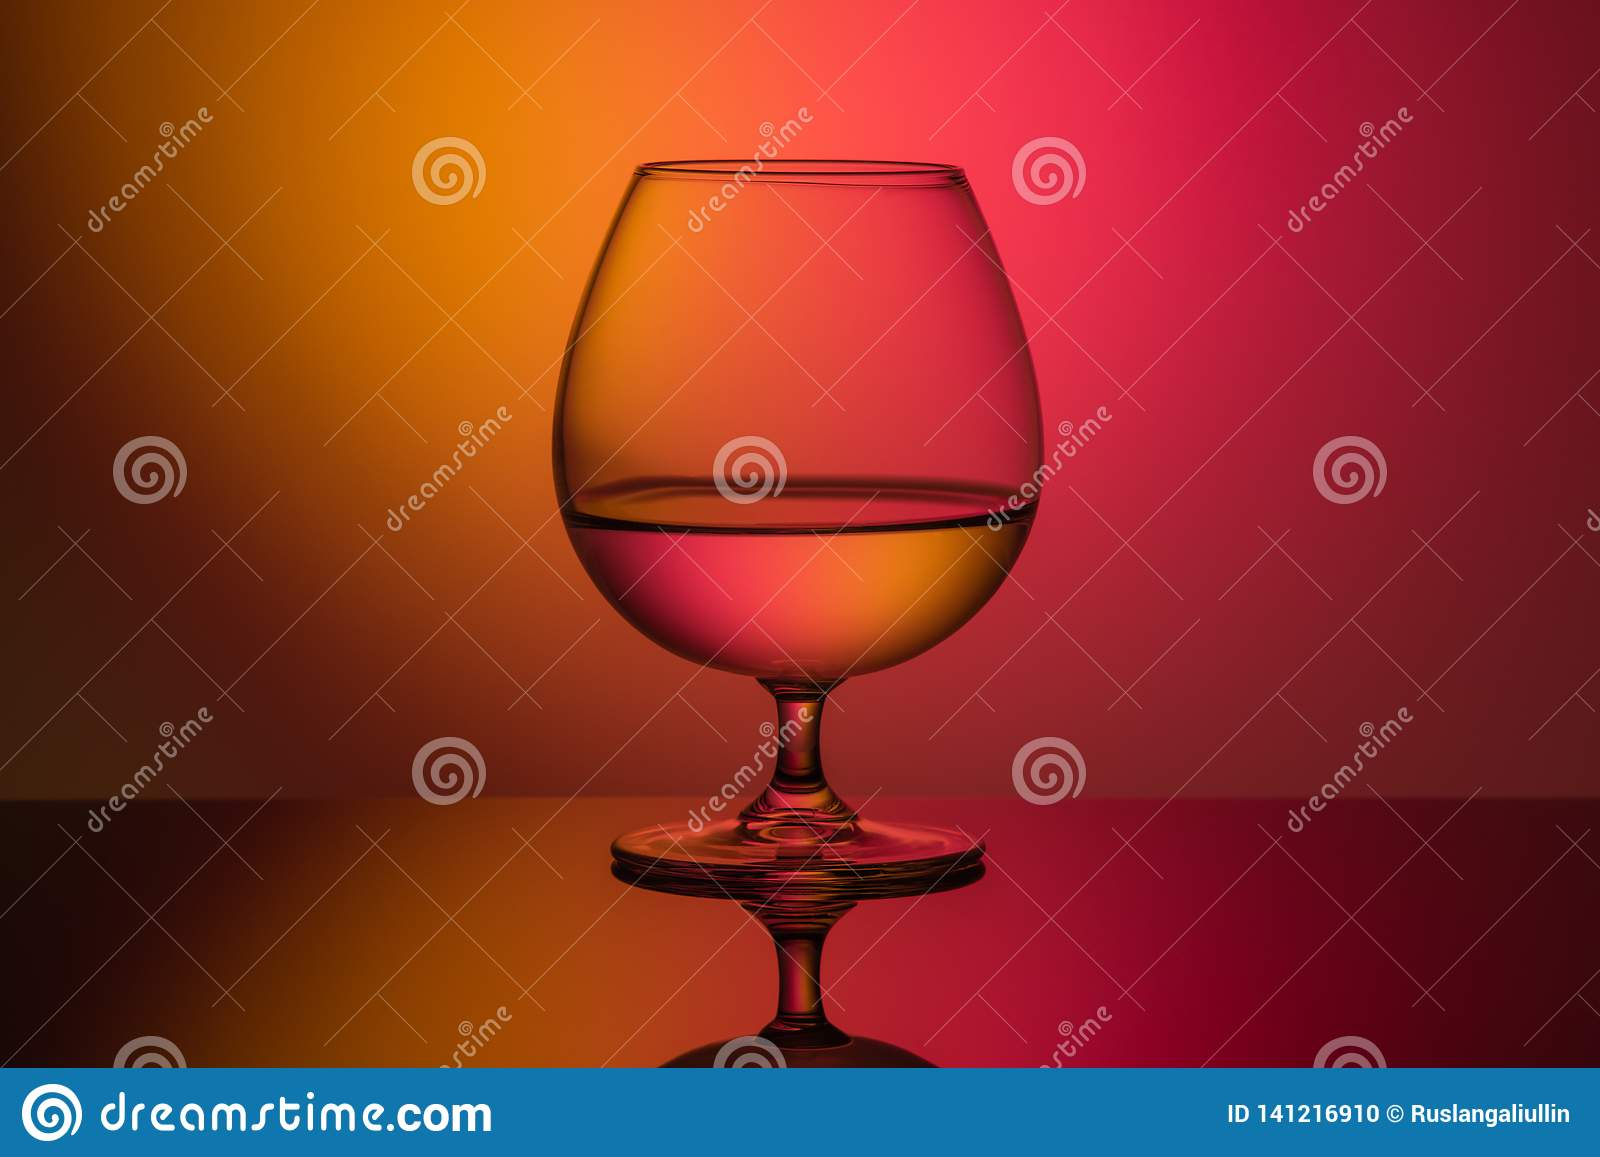 Close-up of brandy glass with liquid on orange red background